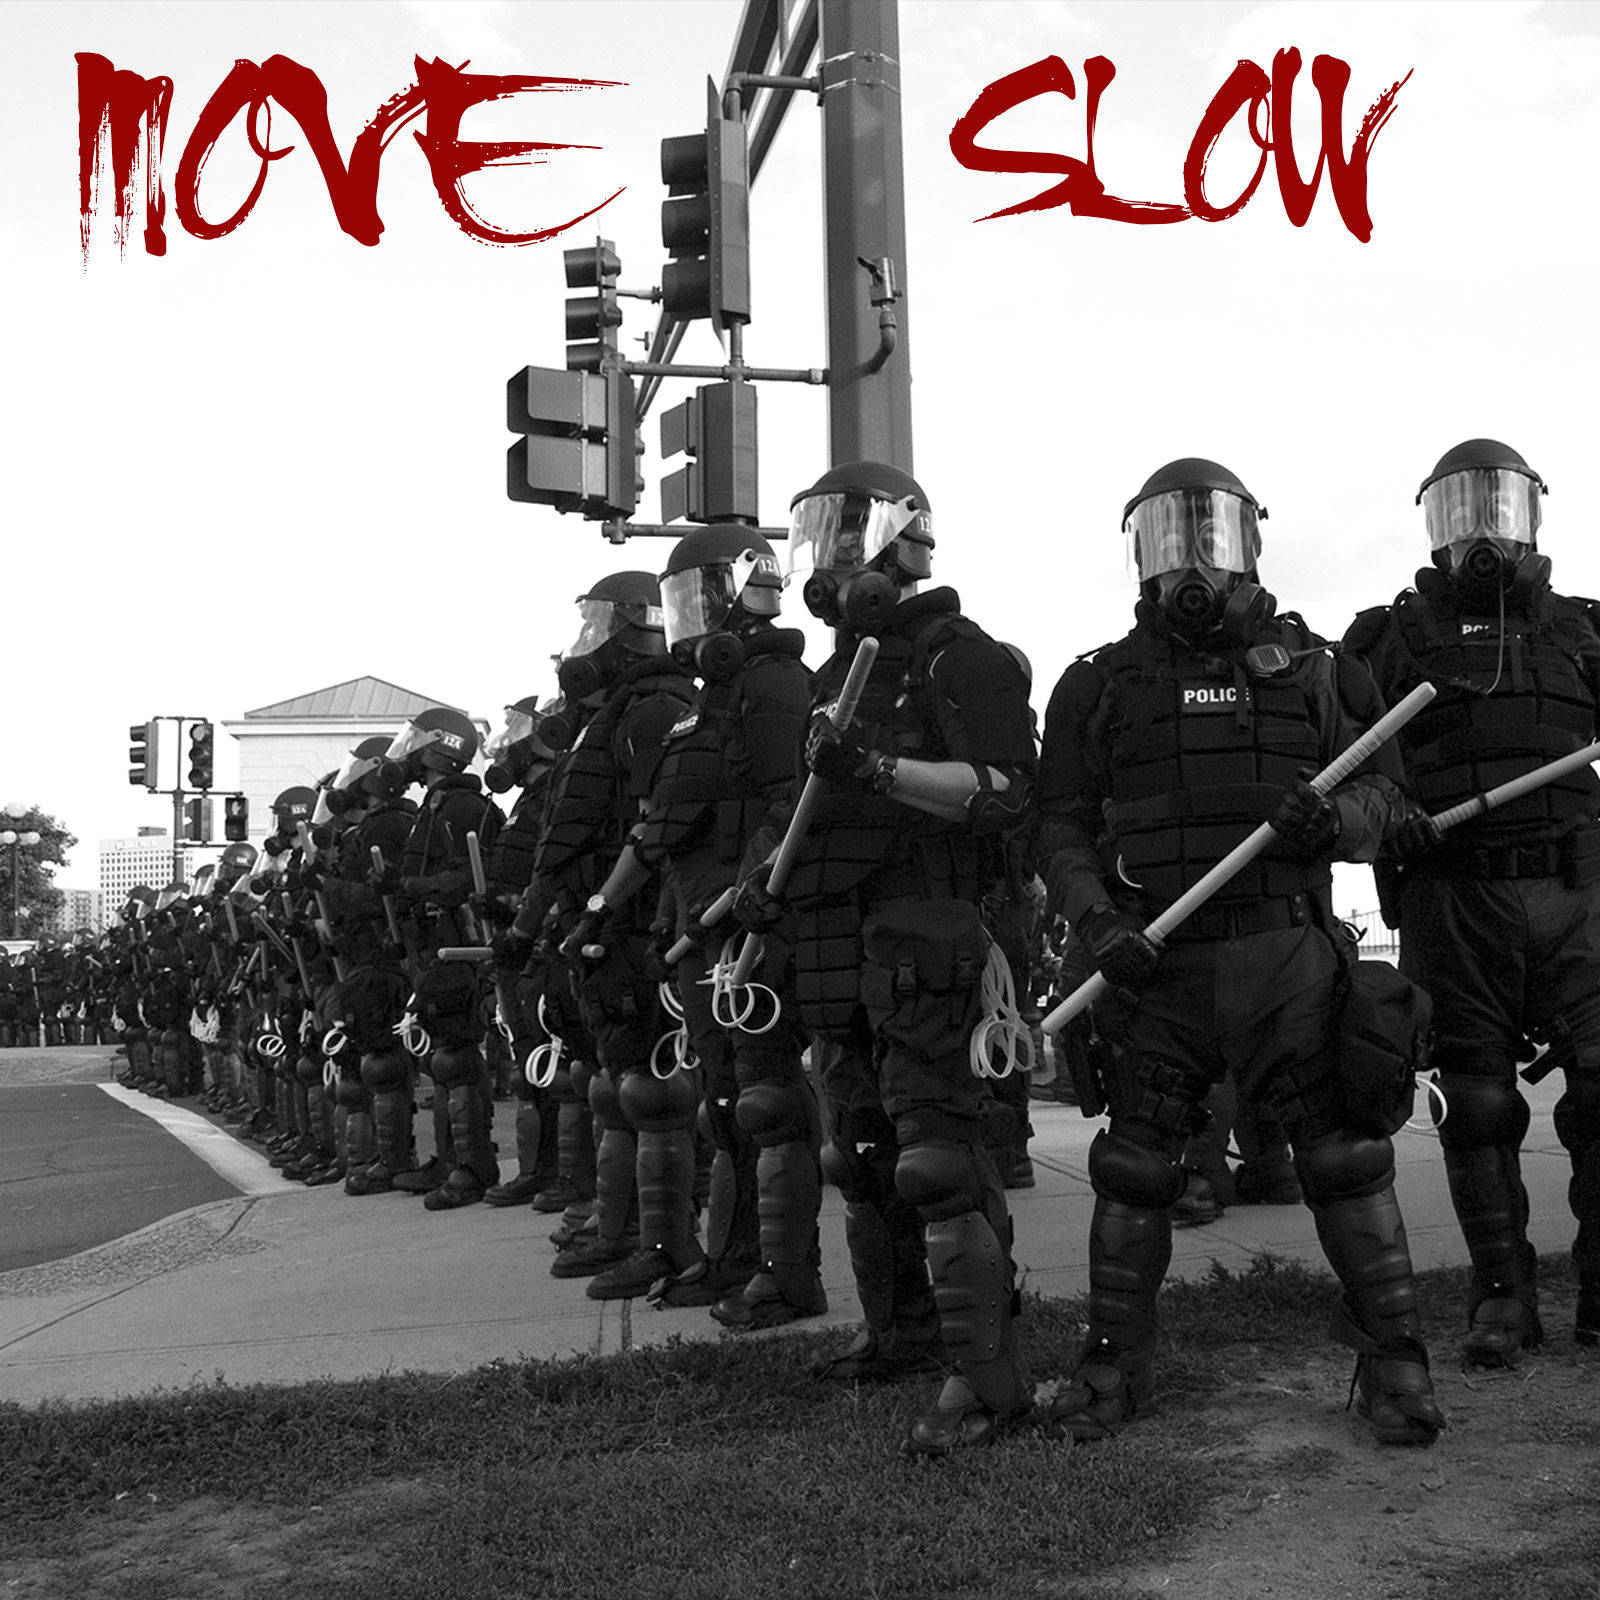 0_1471875760924_Move Slow Cover Art.jpg